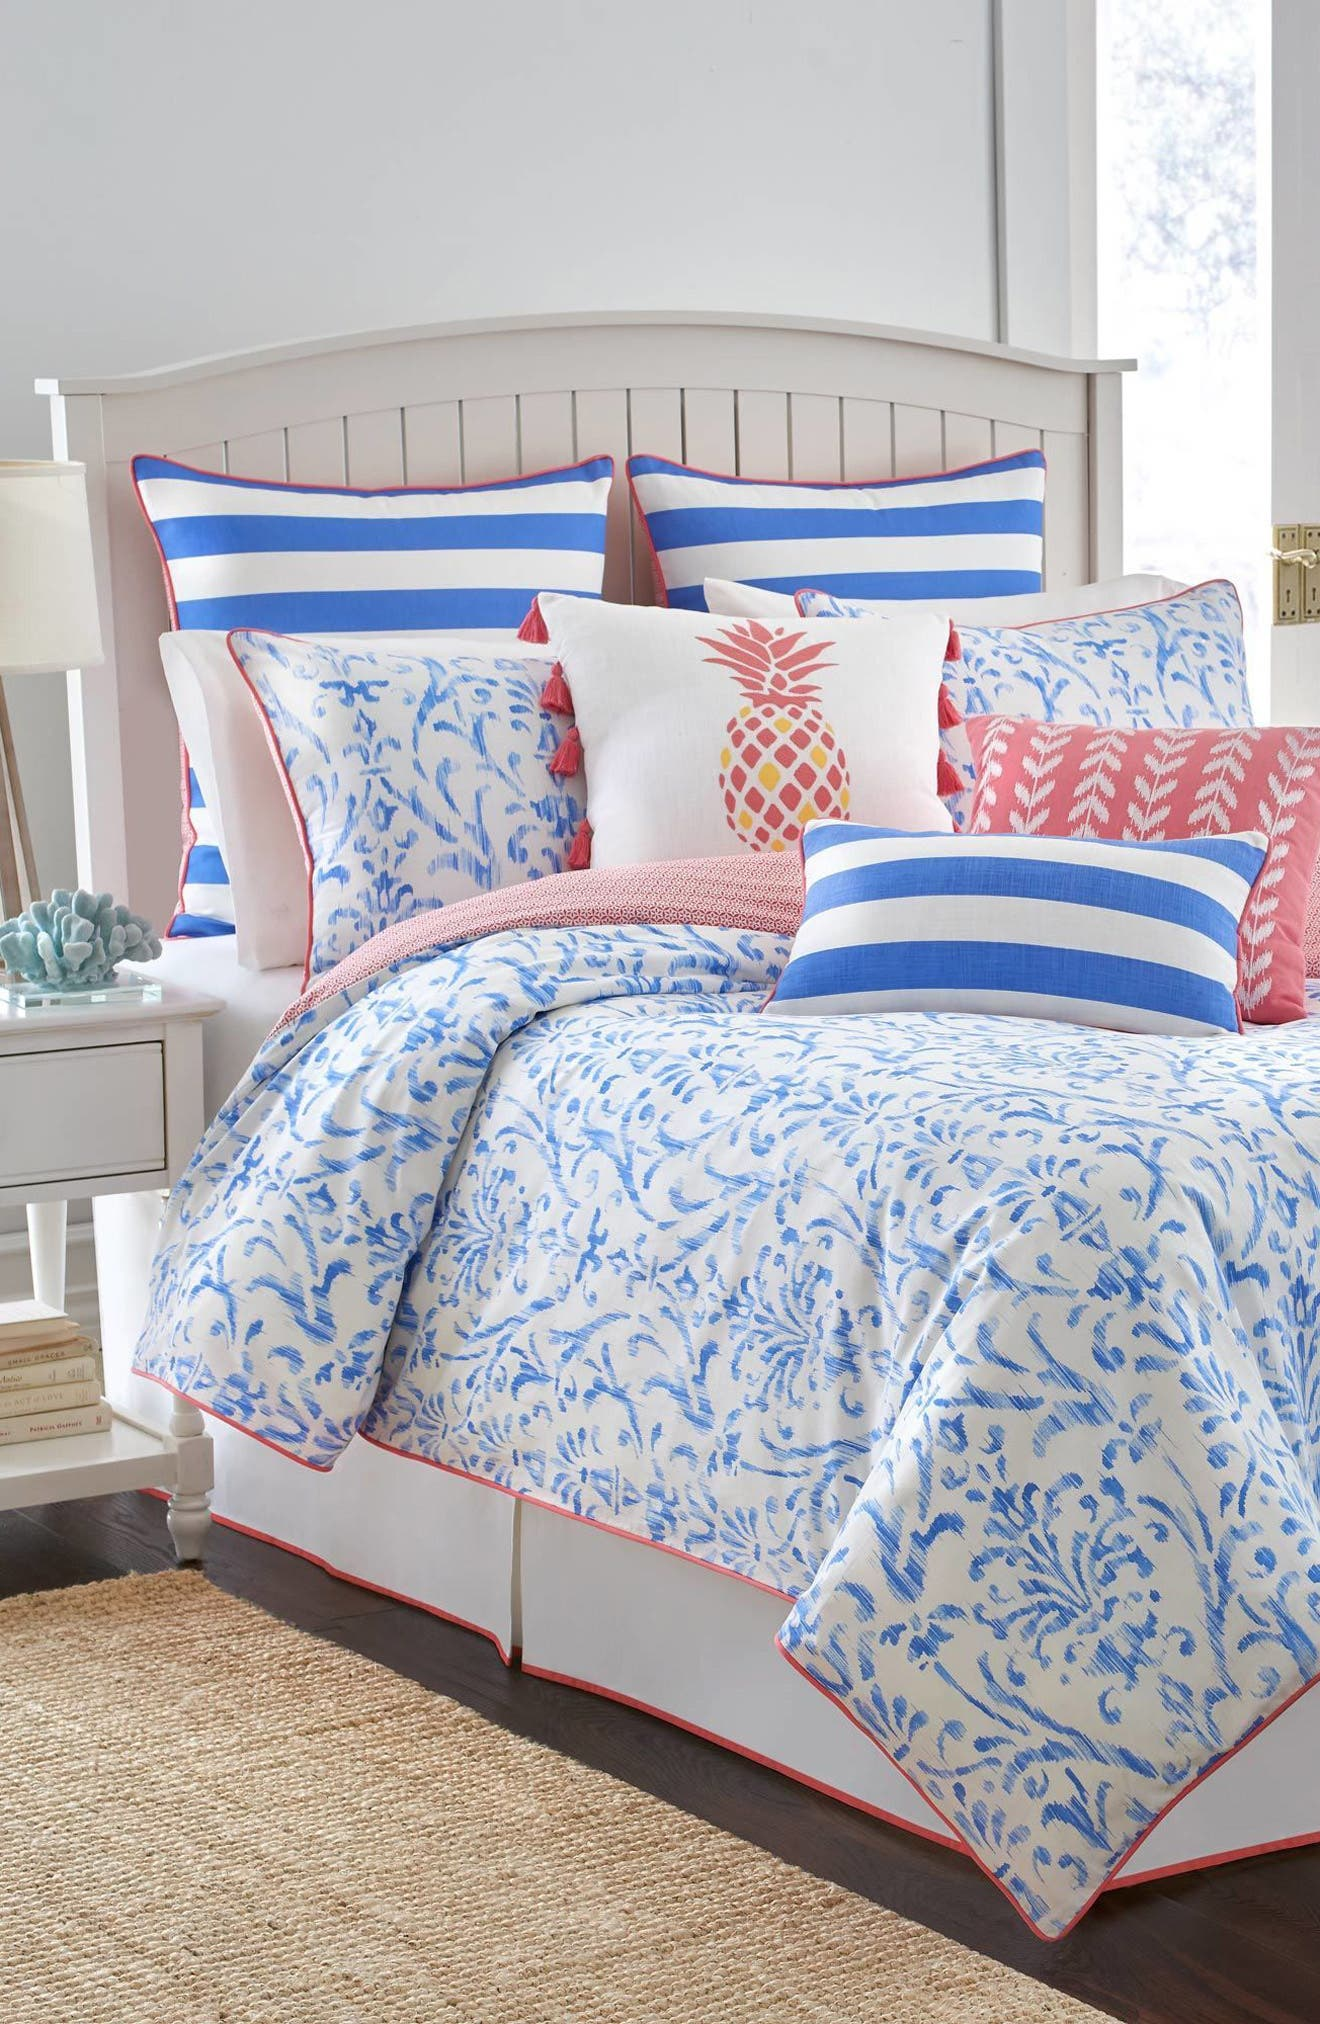 Alternate Image 1 Selected - Southern Tide Coastal Ikat Comforter, Sham & Bed Skirt Set